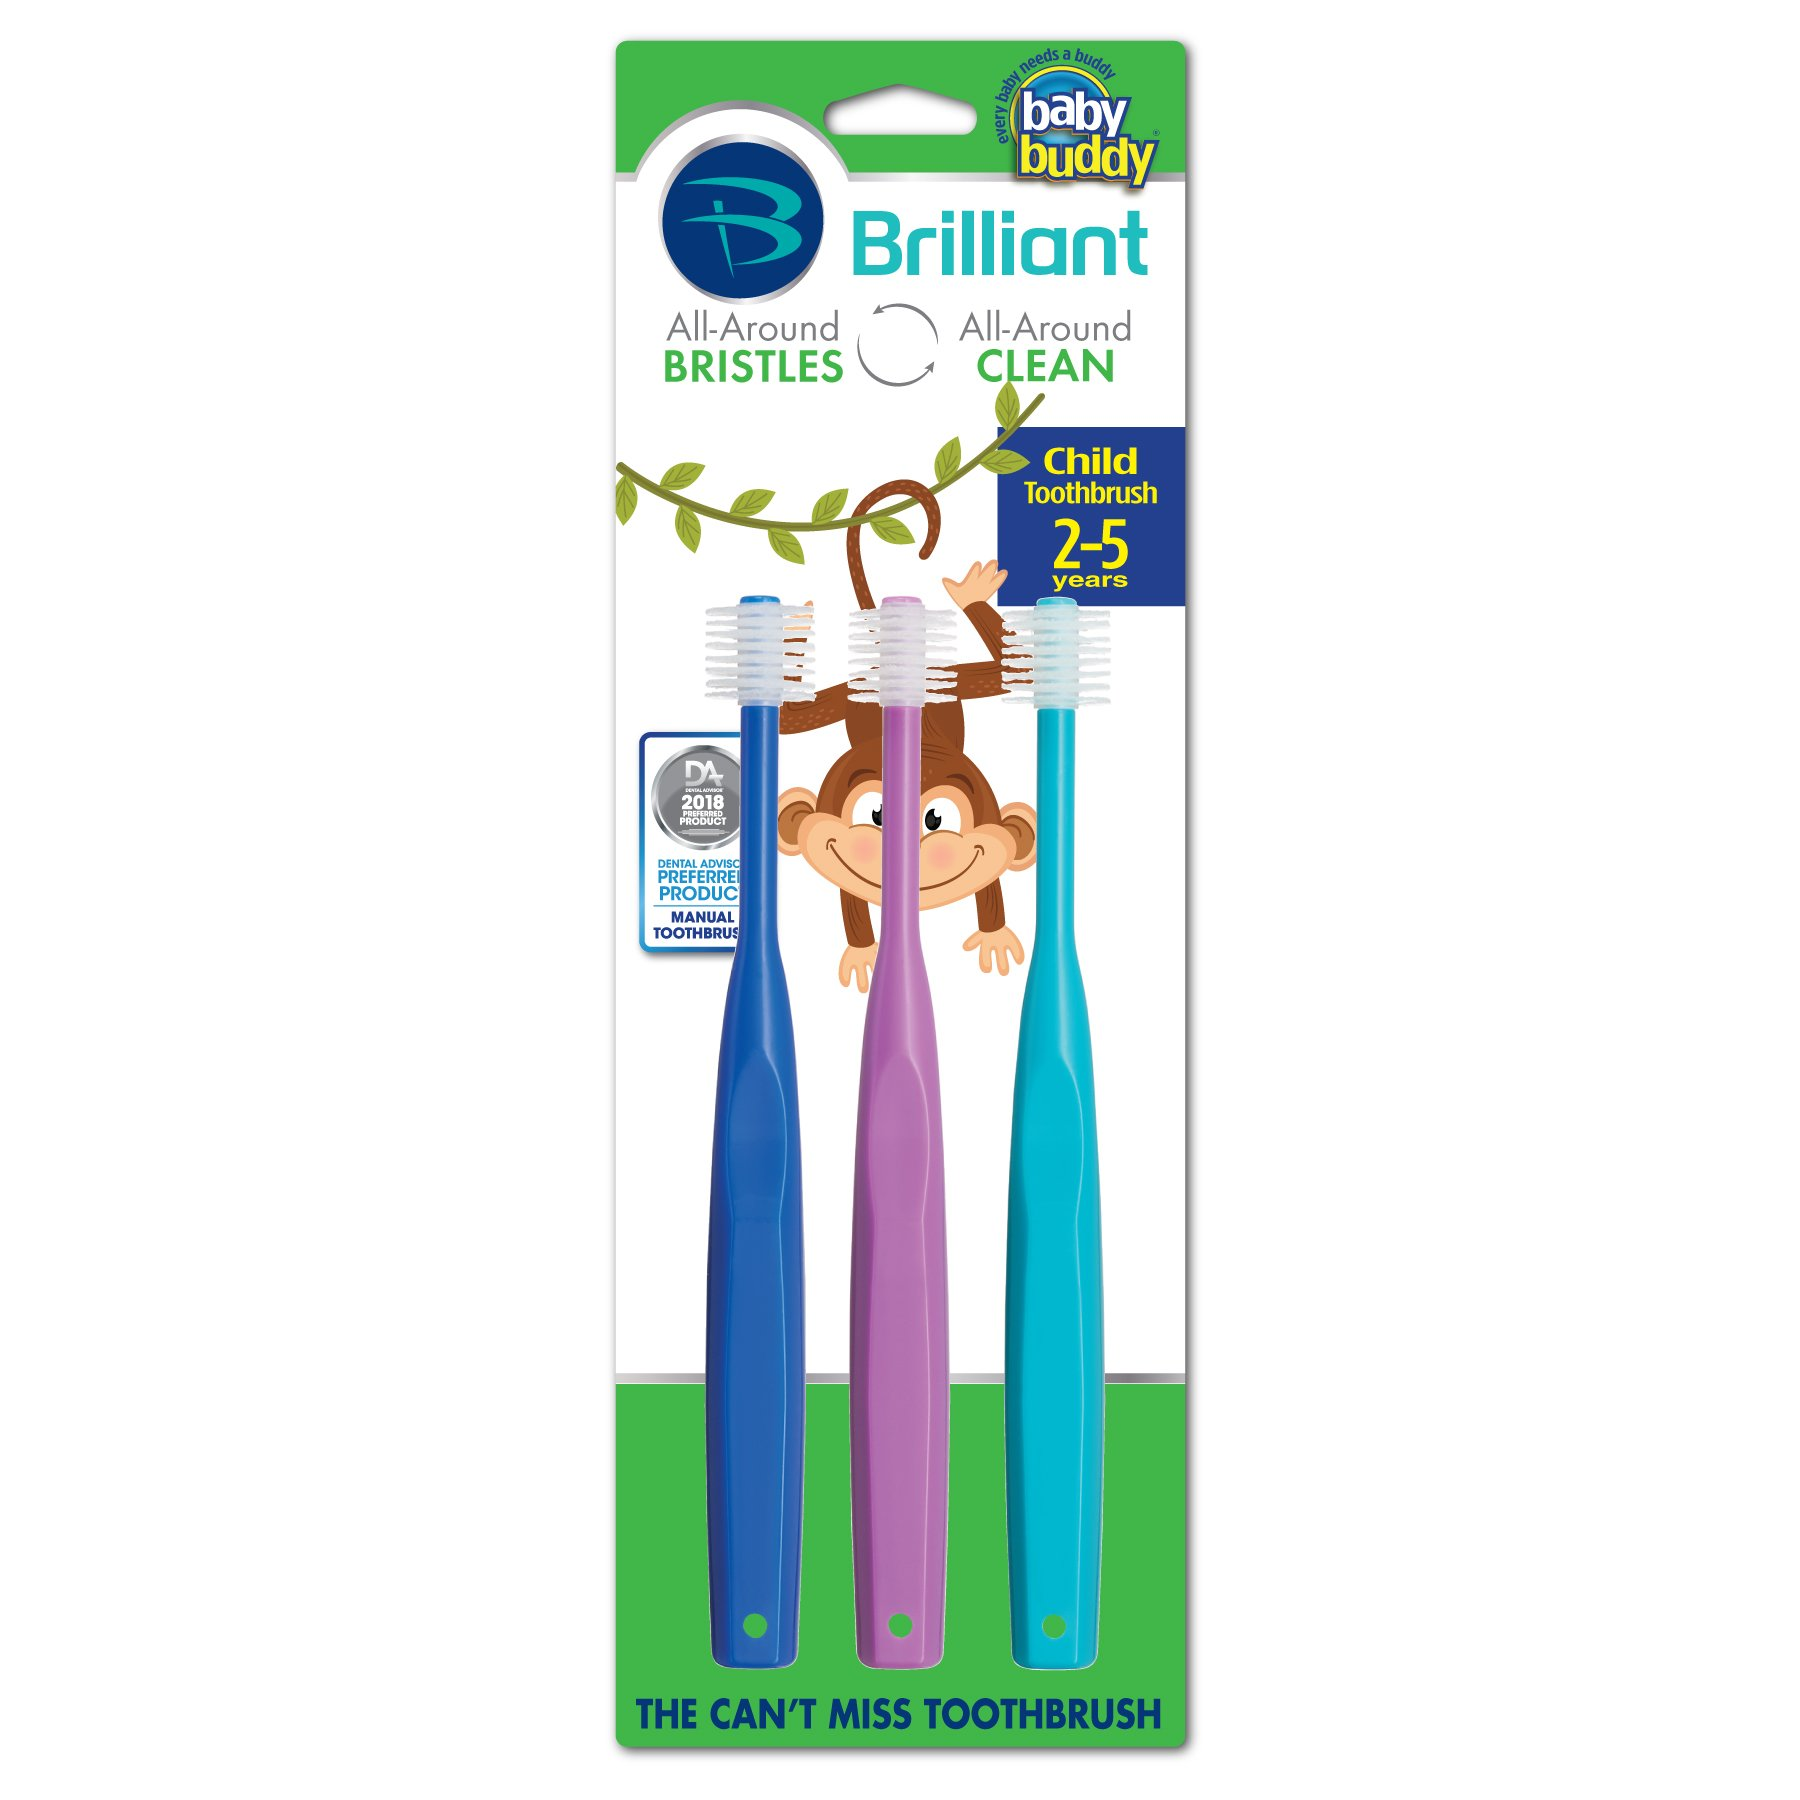 Brilliant Child Toothbrush by Baby Buddy - For Ages 2+ Years, BPA Free Super-Fine Micro Bristles Clean All-Around Mouth, Kids Love Them, Royal-Purple-Teal, 3 Count